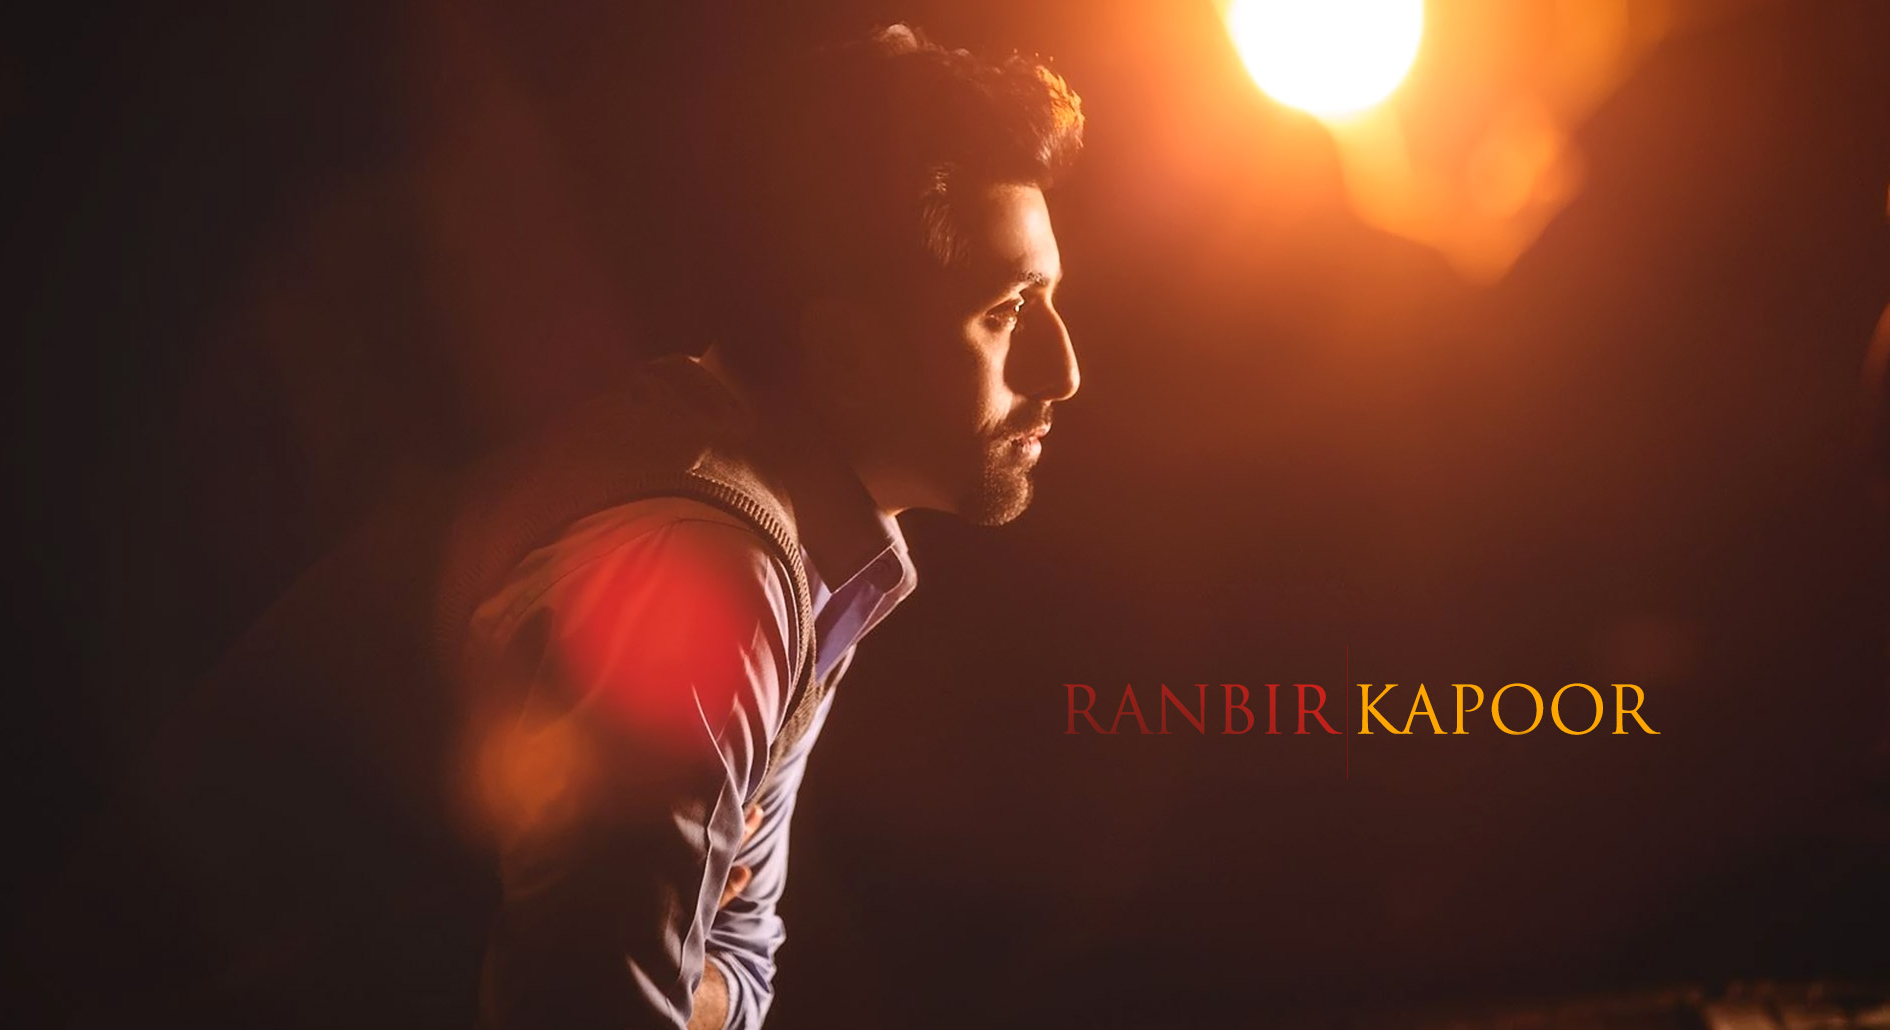 Ranbir Kapoor Images Full HD Download